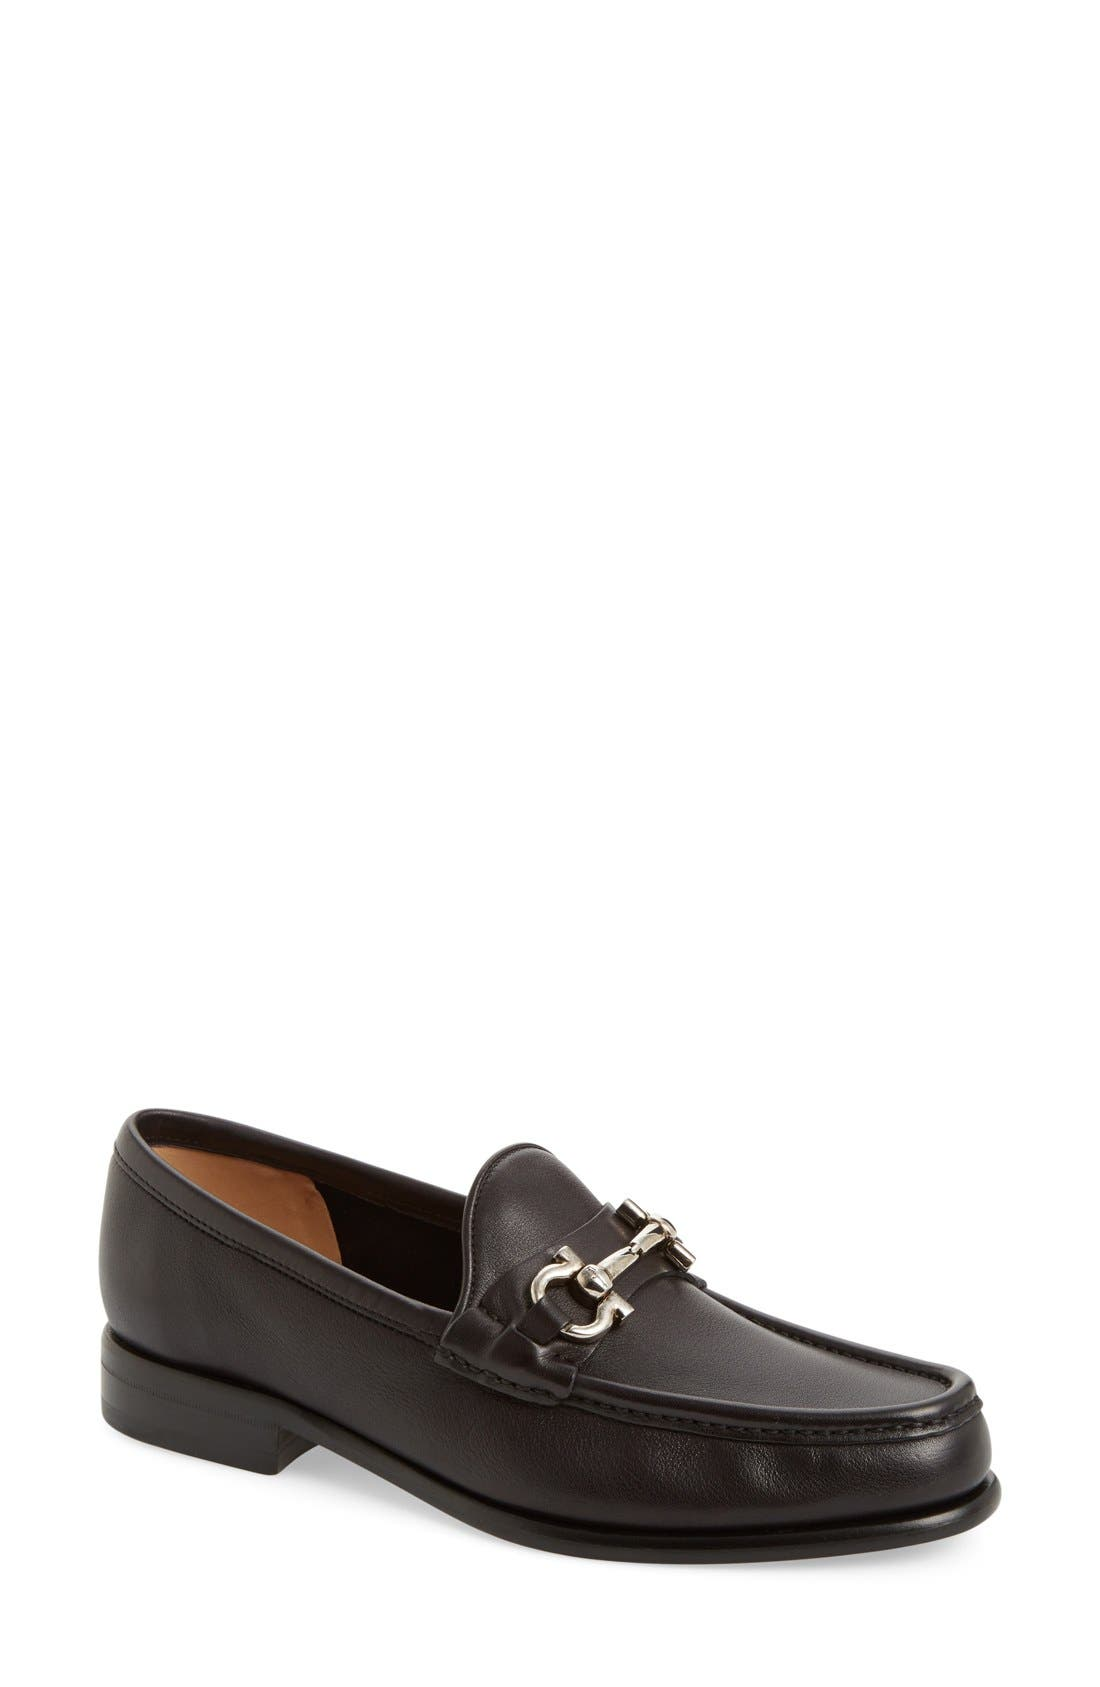 Salvatore Ferragamo Horsebit Loafer (Women)